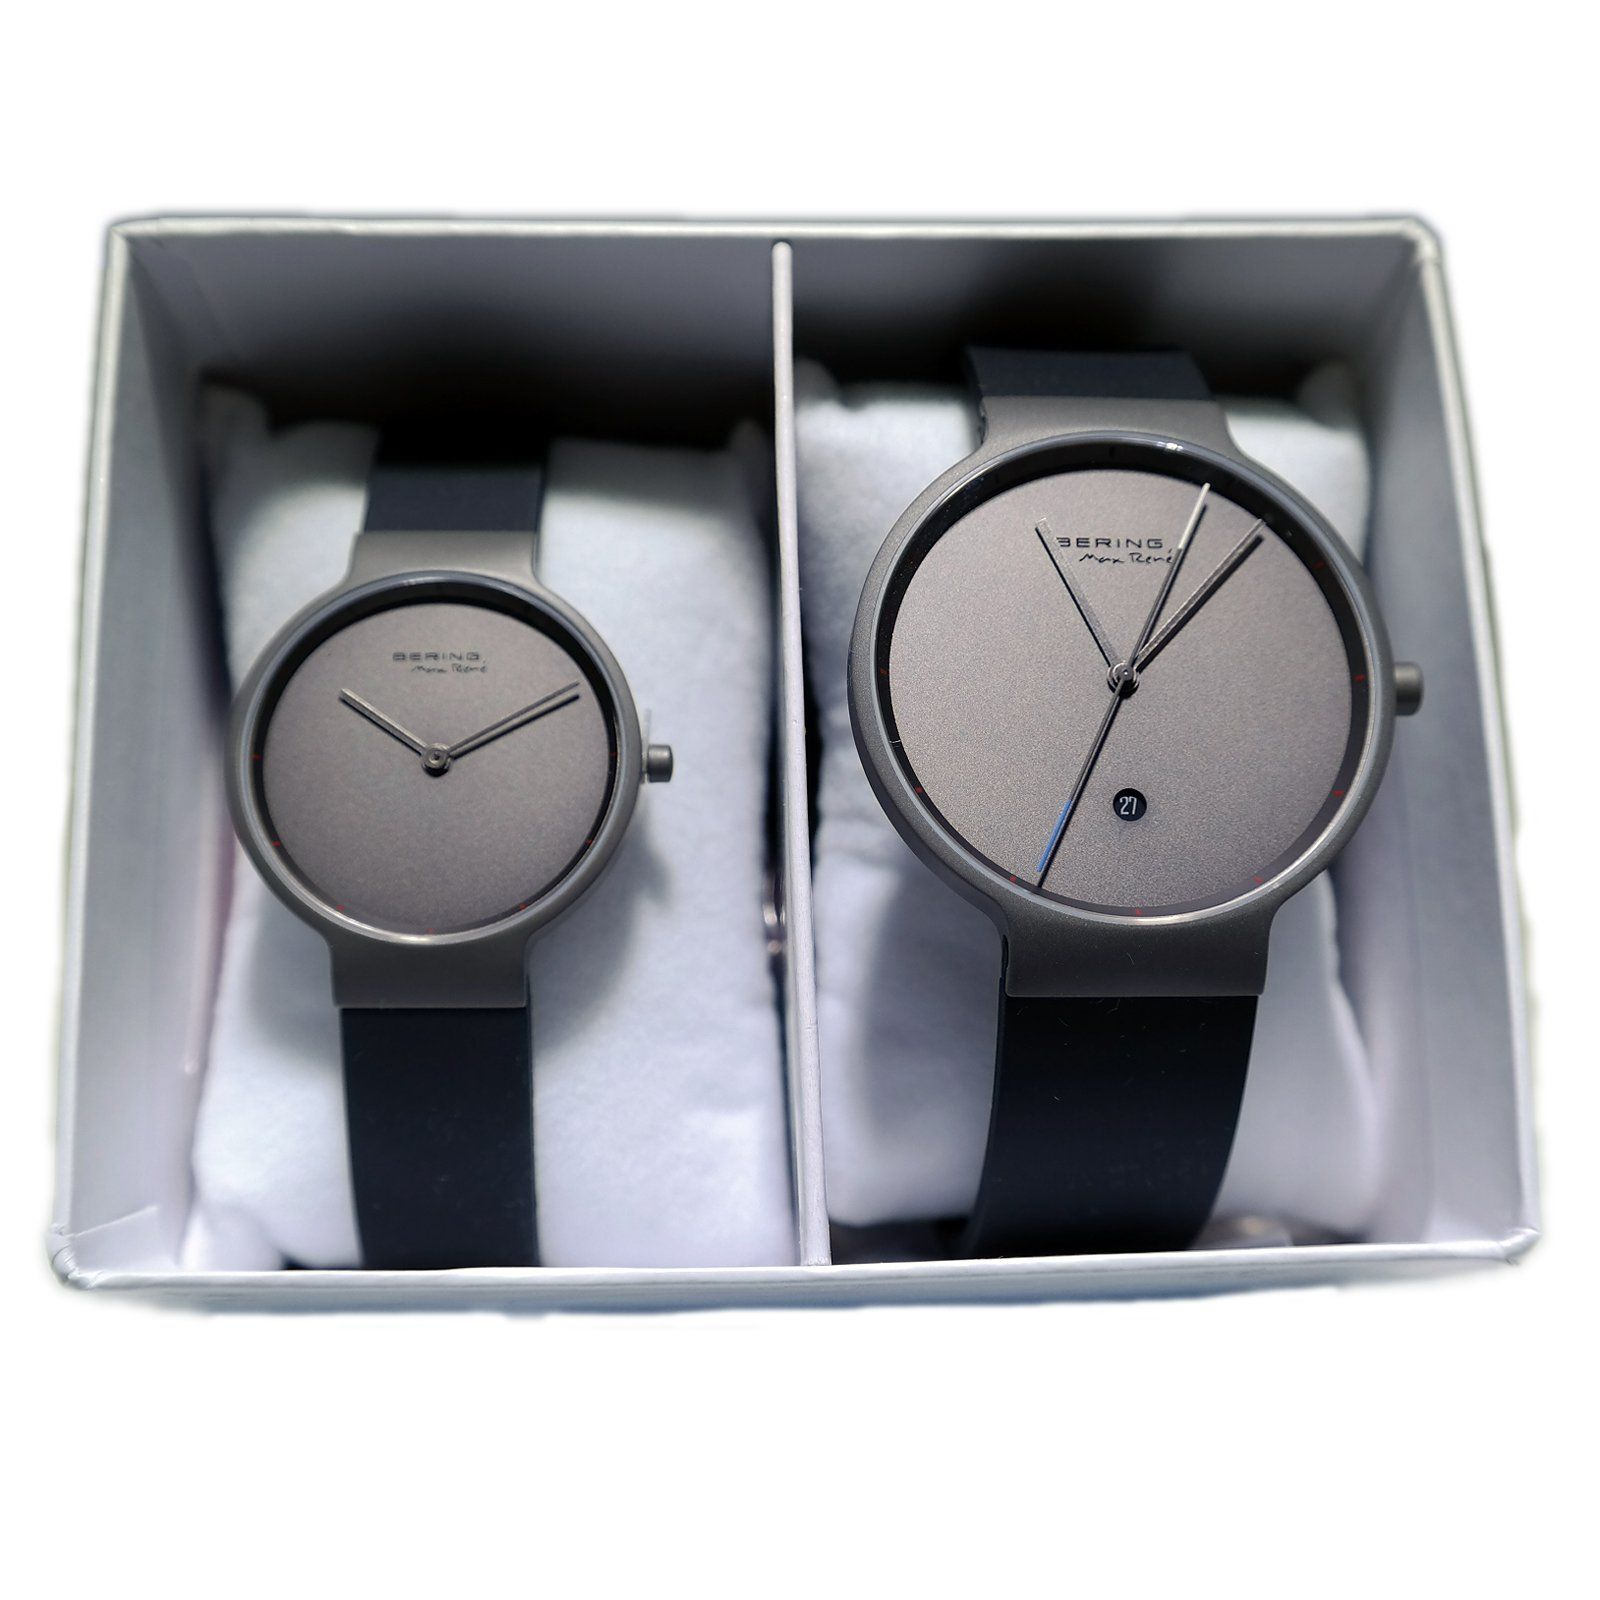 b1787186ece1 BERING MAX RENE His and Hers Watches Gift Set